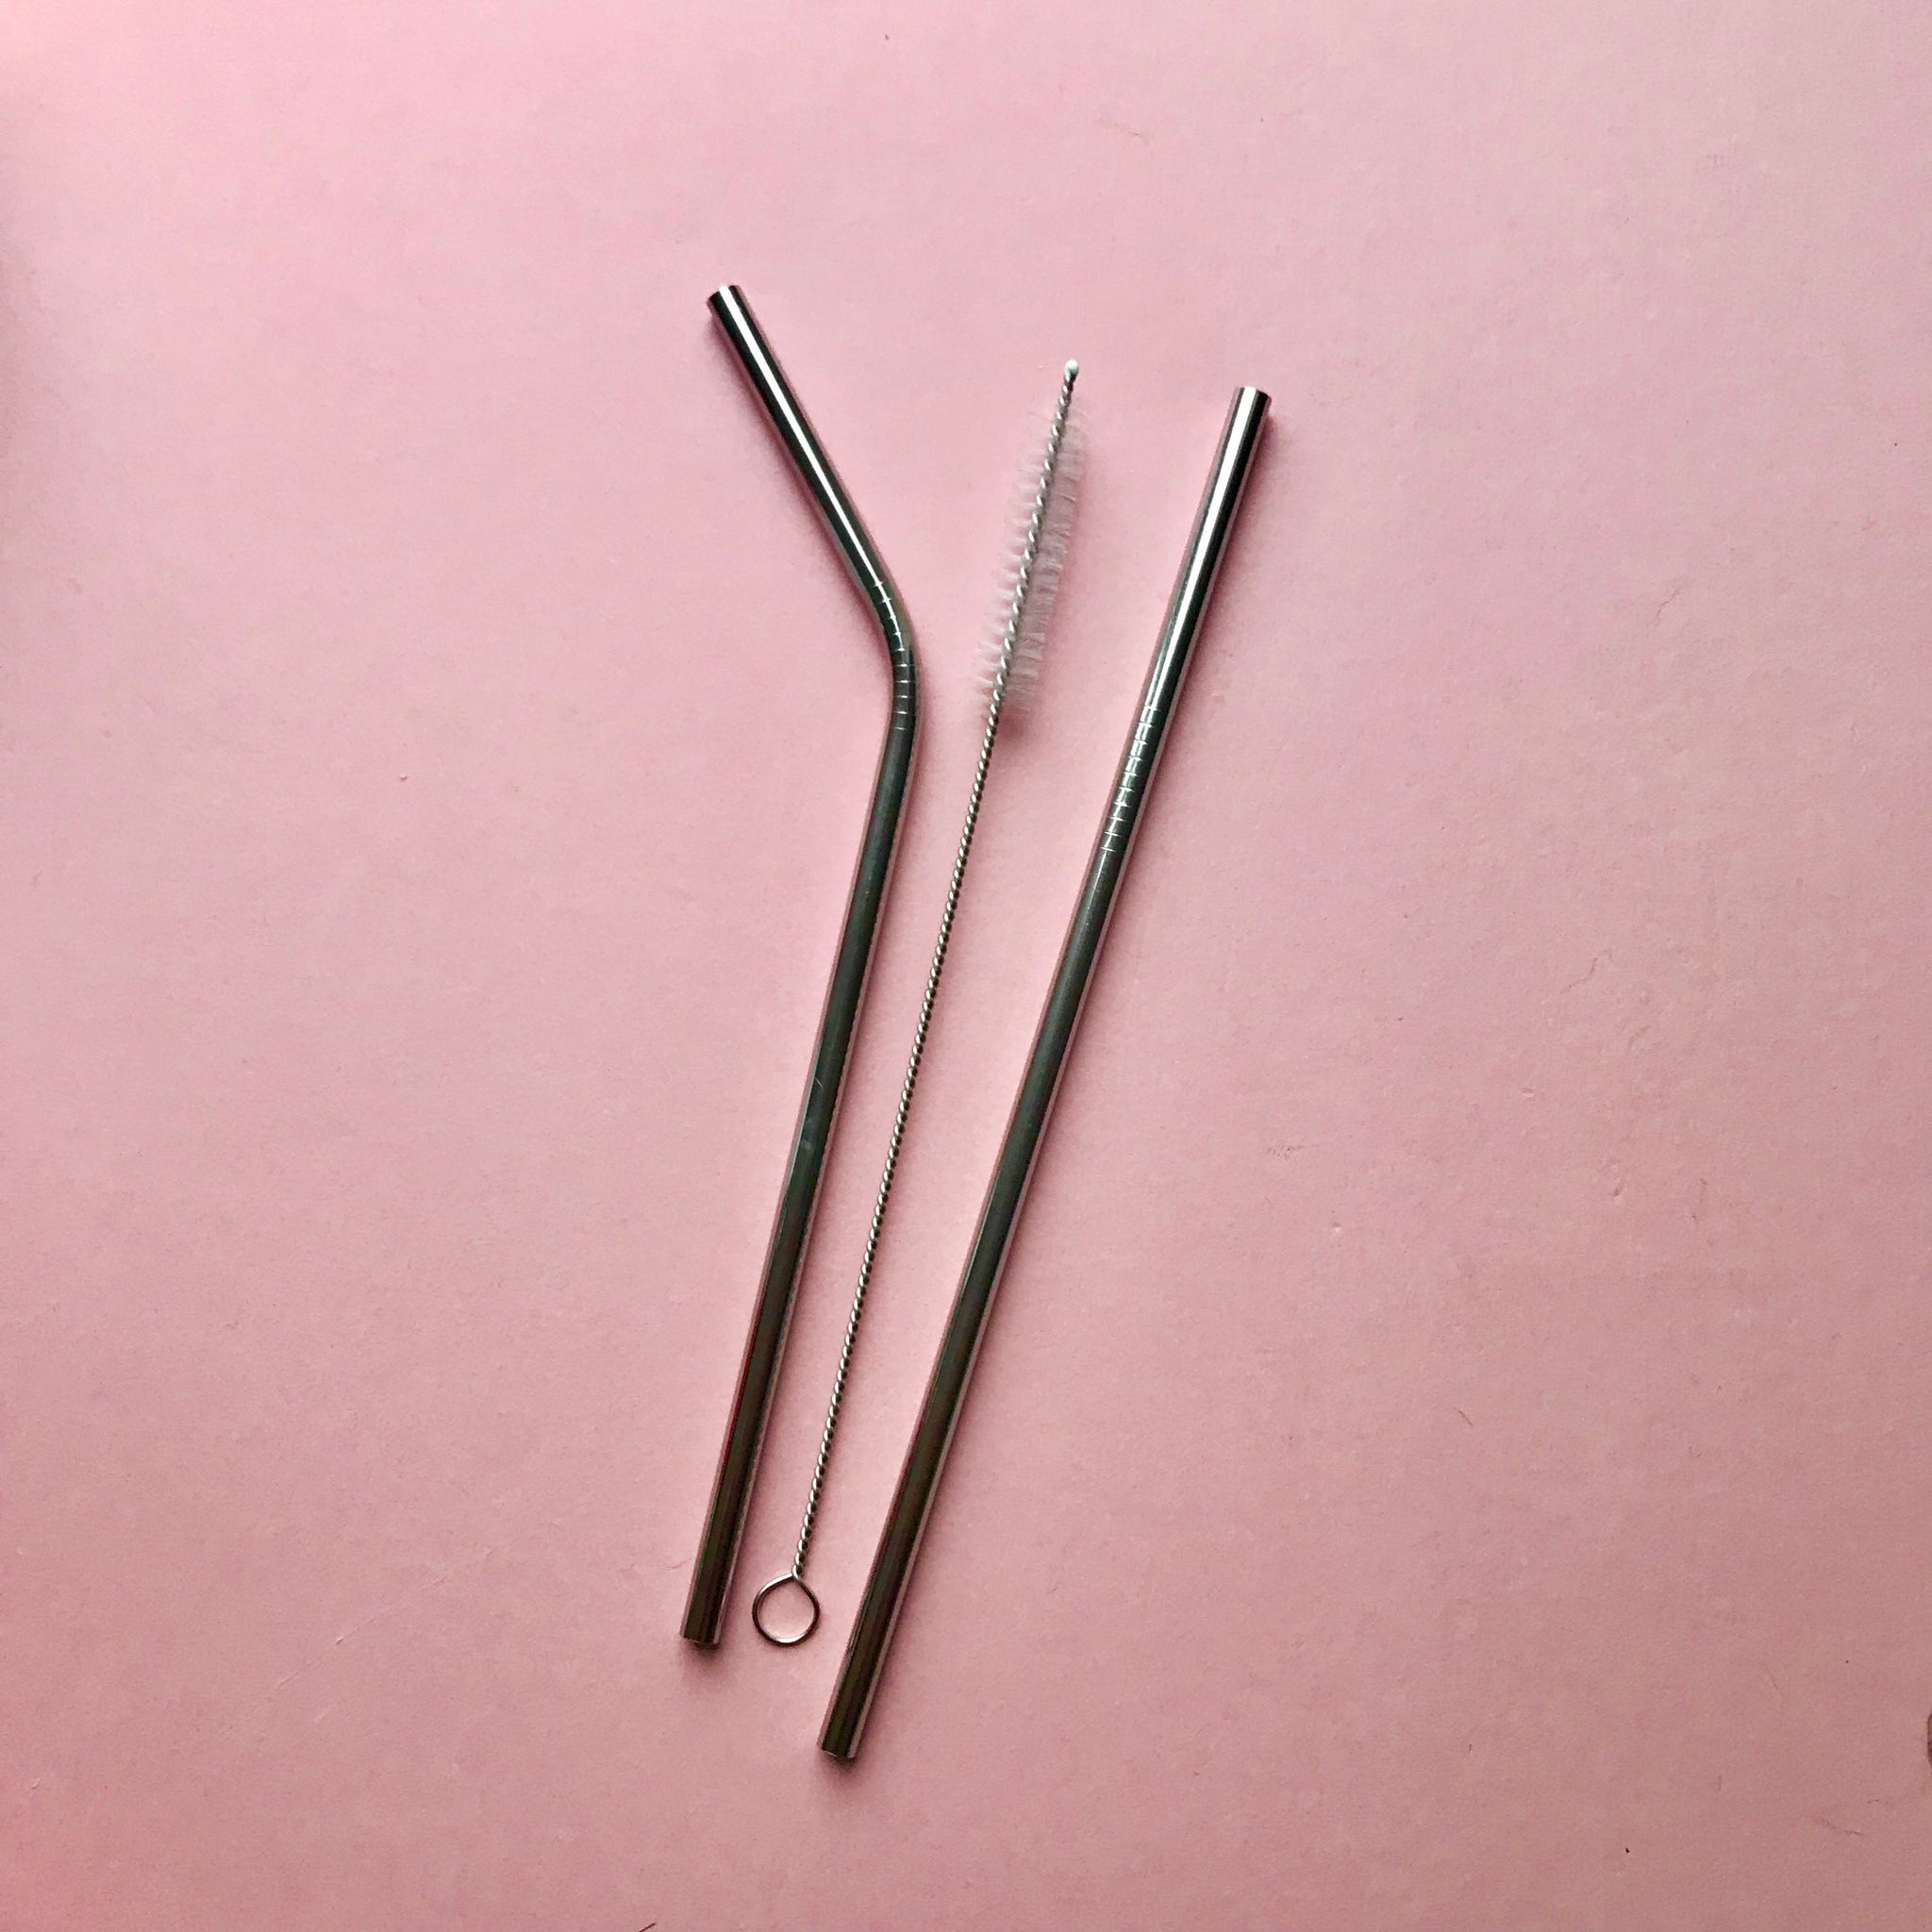 Stainless Steel Metal Straws & Straw Cleaner